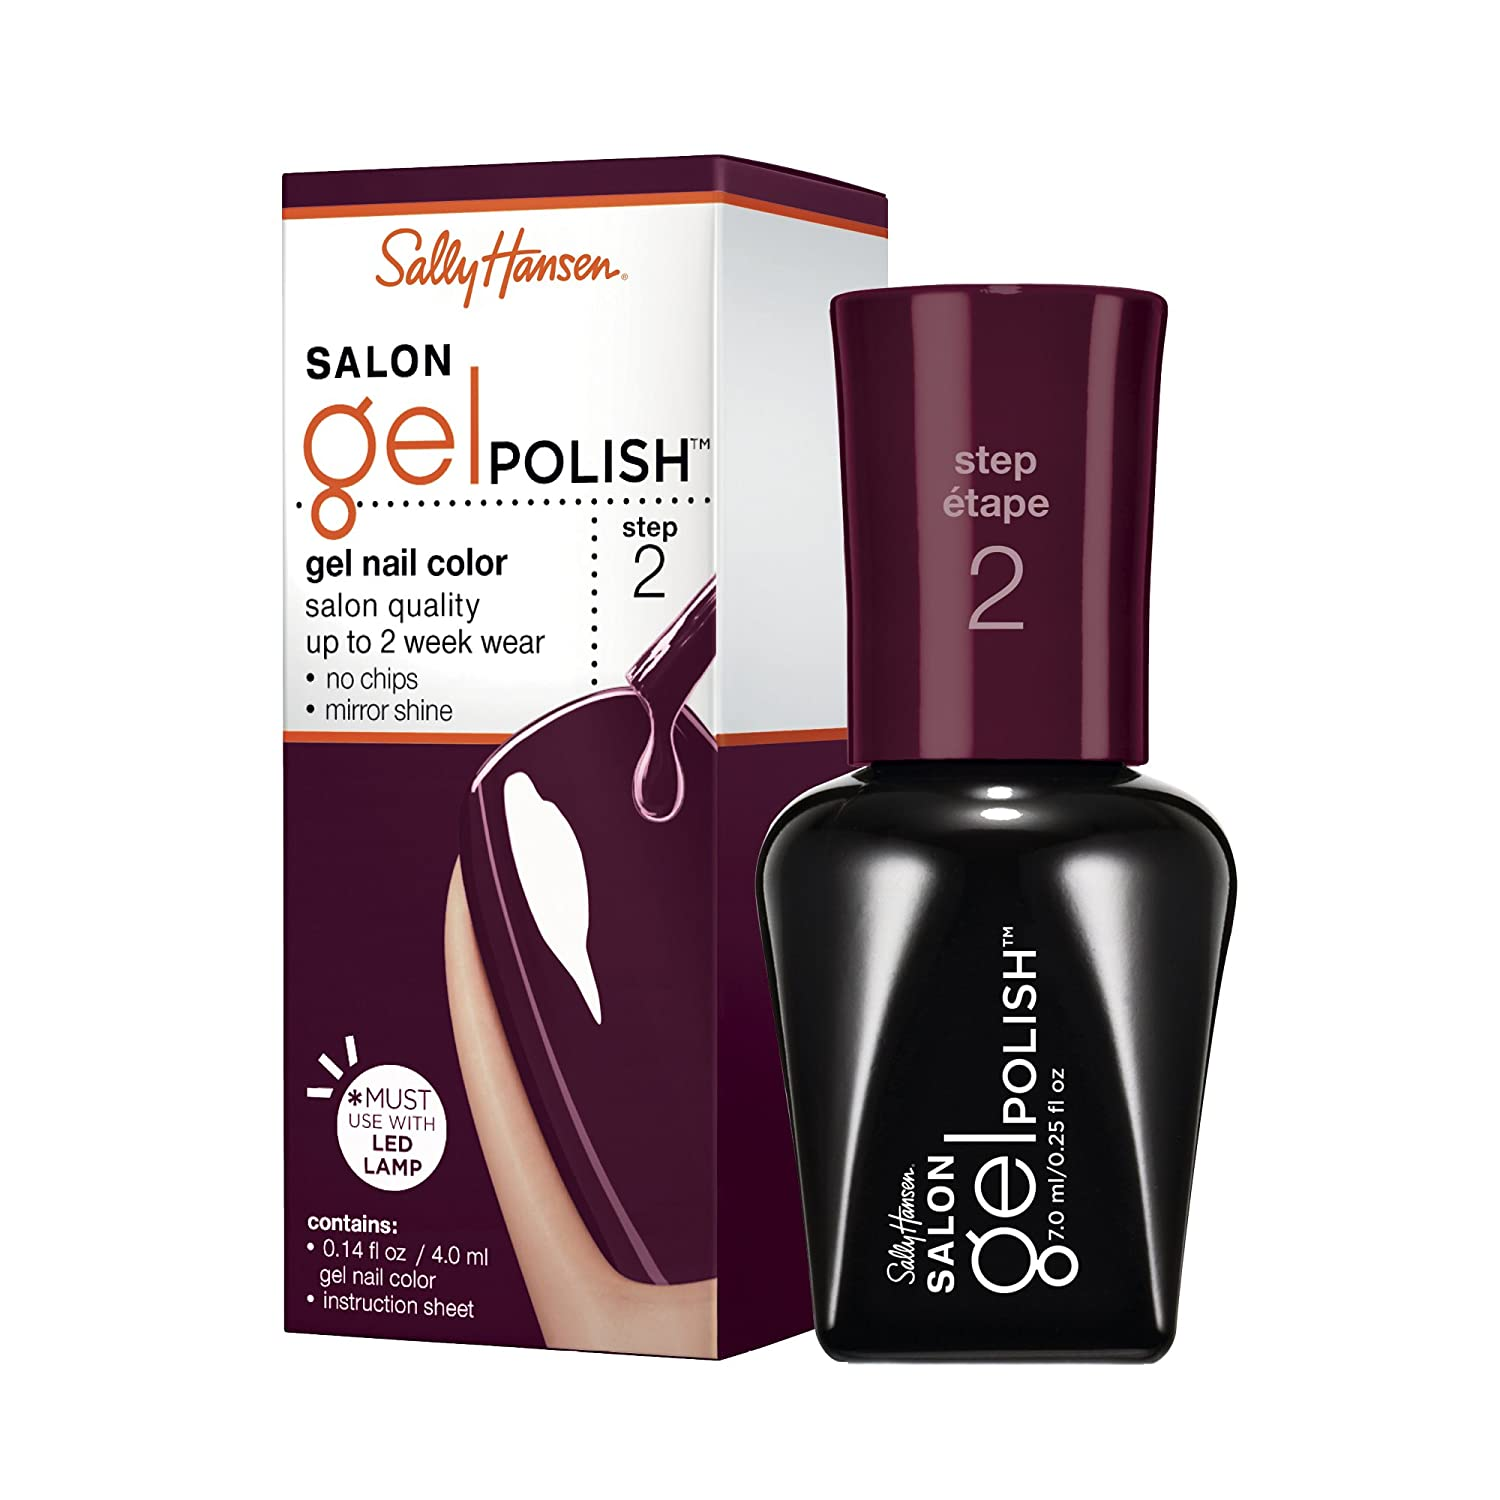 Sally Hansen Salon Pro Gel, Pat On The Black, 0.25 Fluid Ounce